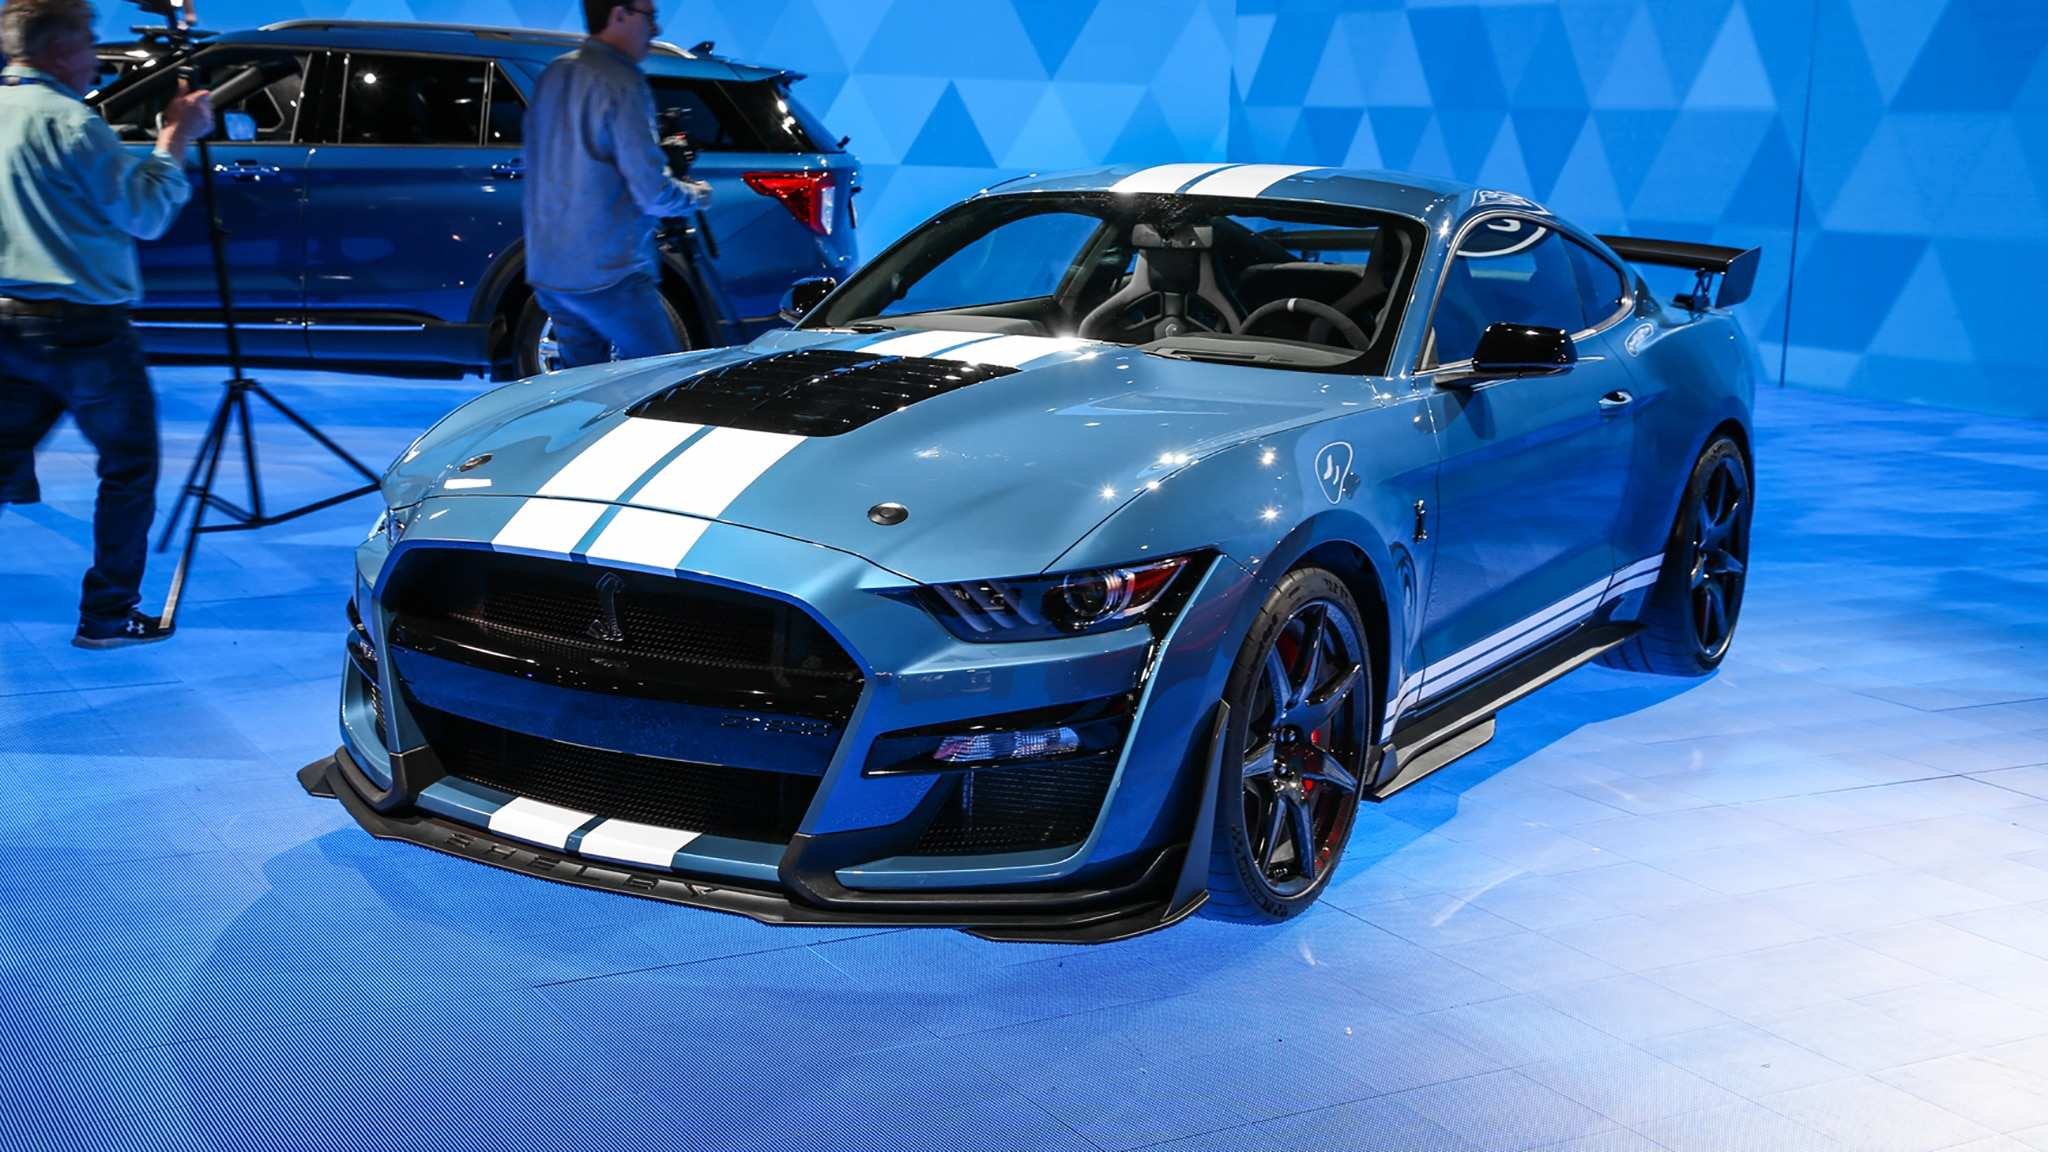 90 Concept of Price Of 2020 Ford Mustang Shelby Gt500 Pricing for Price Of 2020 Ford Mustang Shelby Gt500